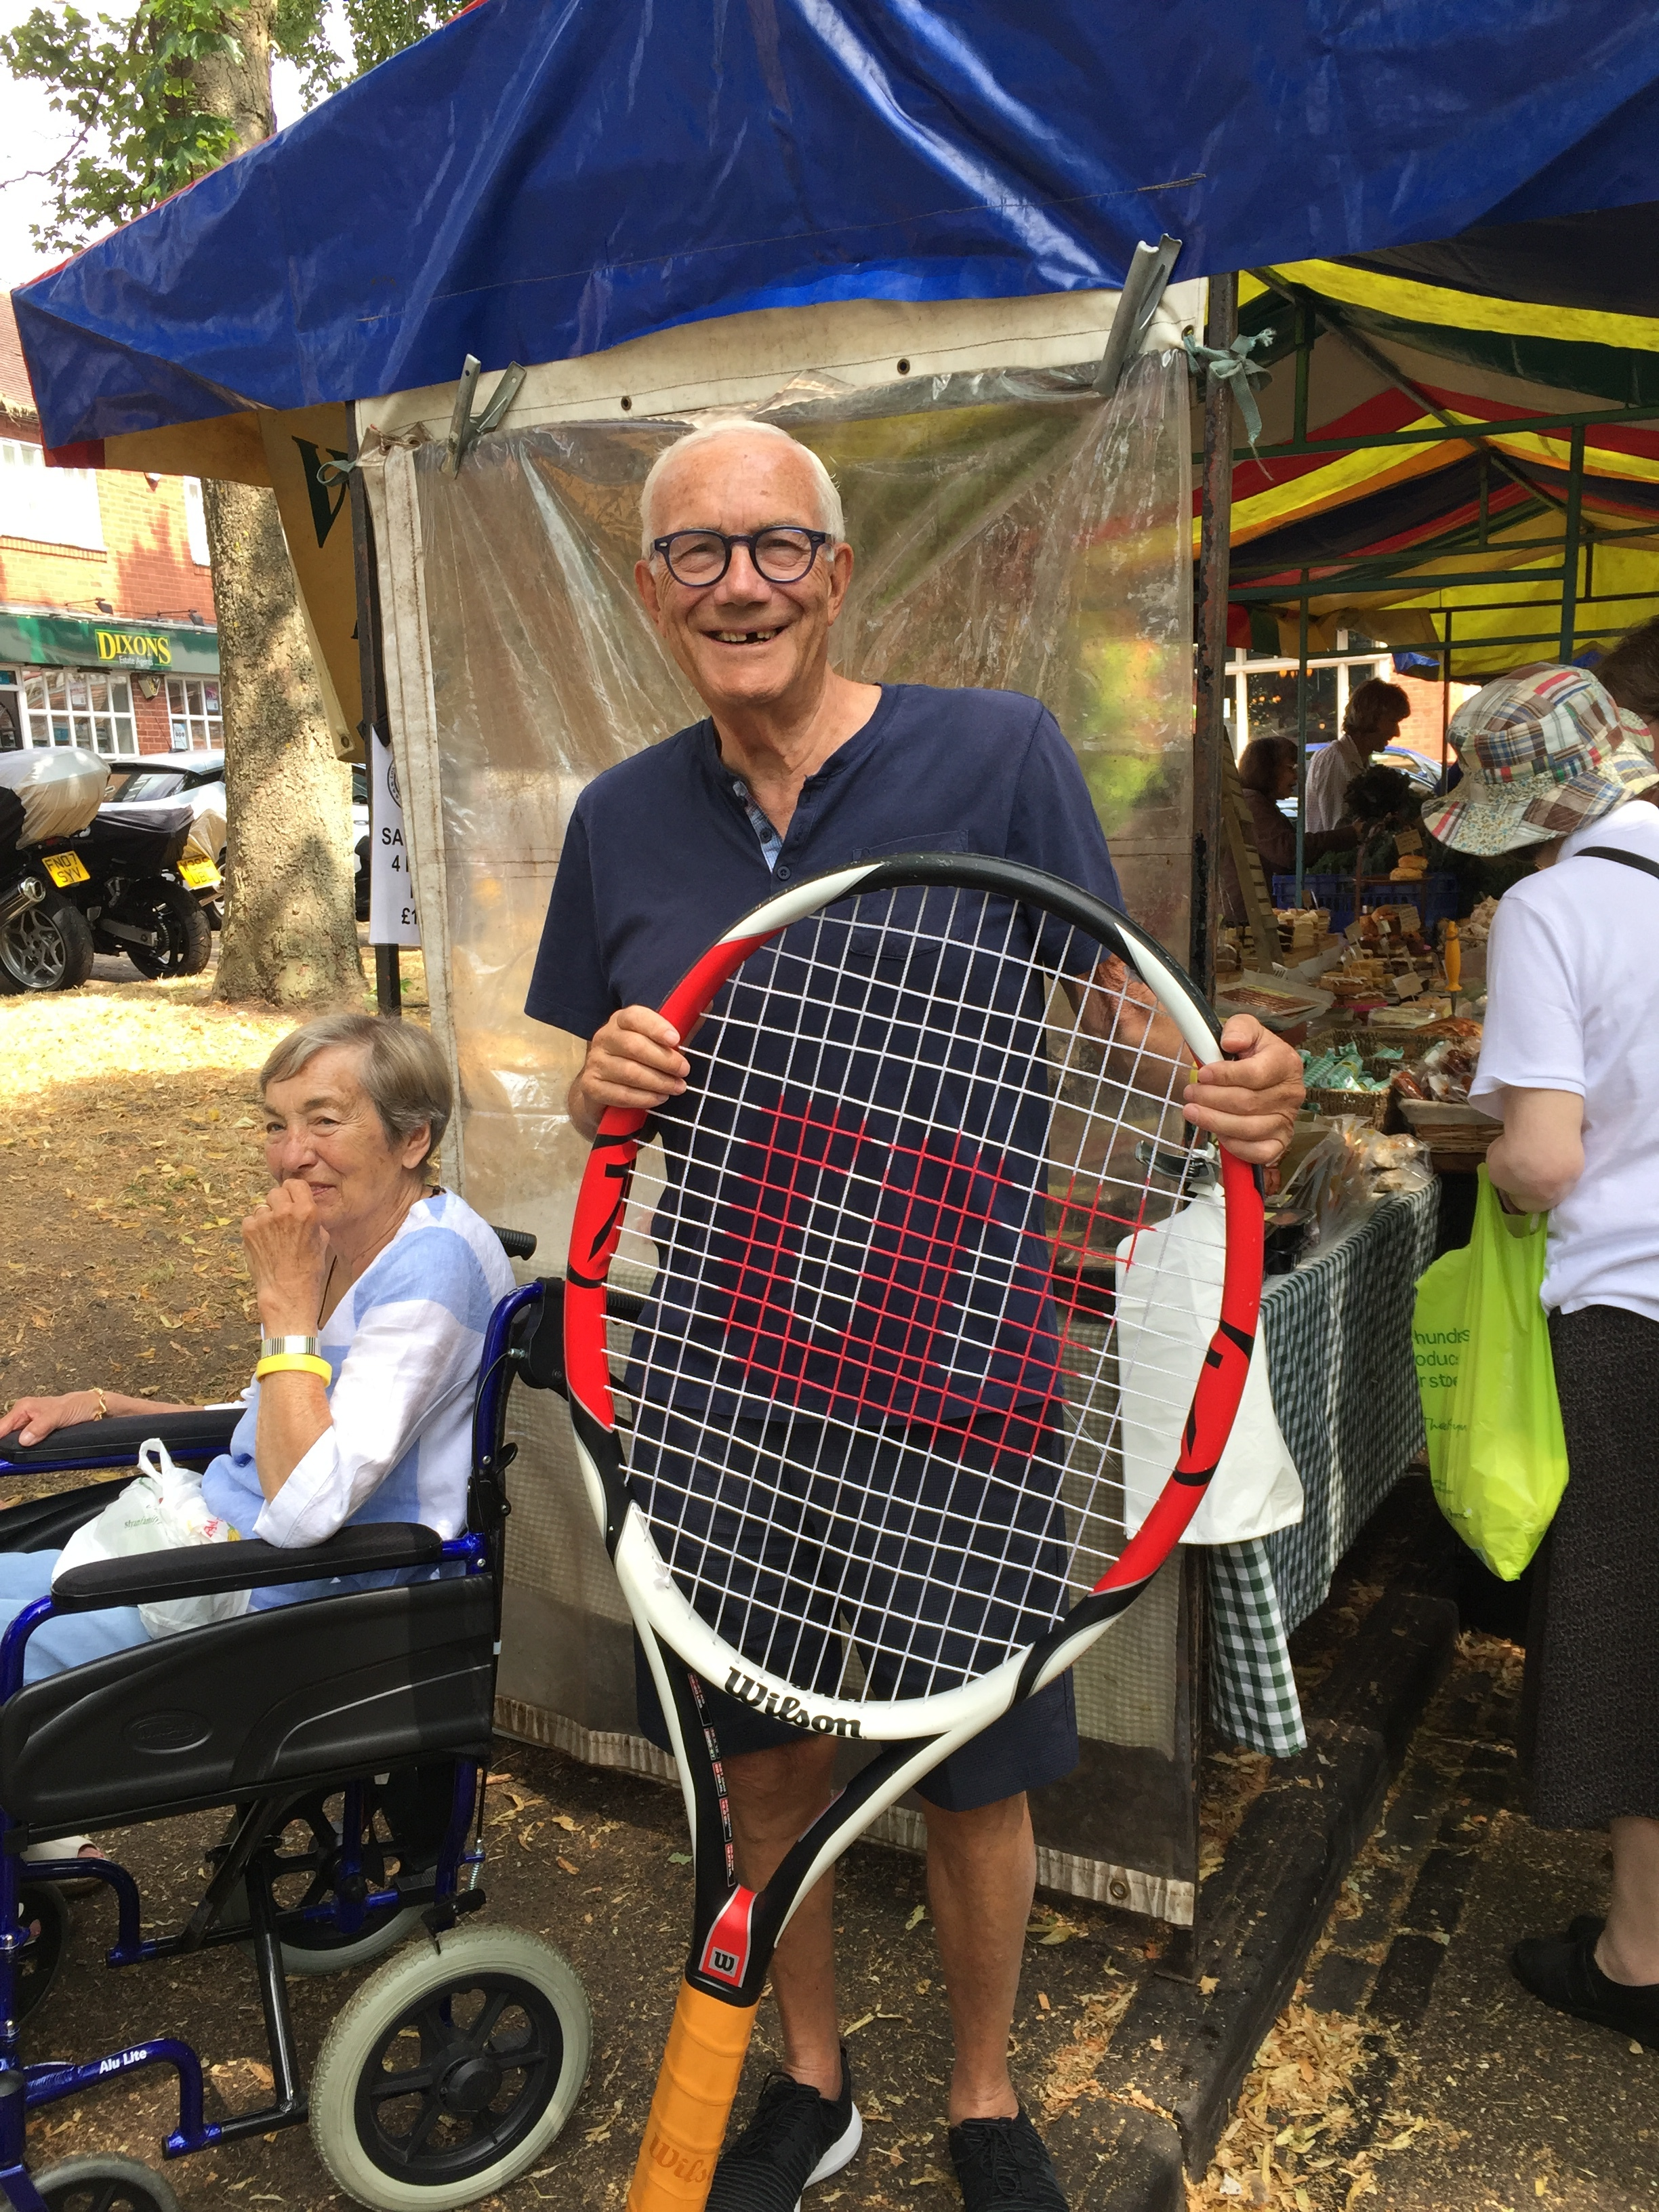 Kings Norton Tennis Club - The tennis club supported our July market and great fun was had by all - including a founding member of the market; John Bodycote!Lovely racket John, bet you hardly miss a ball with that....